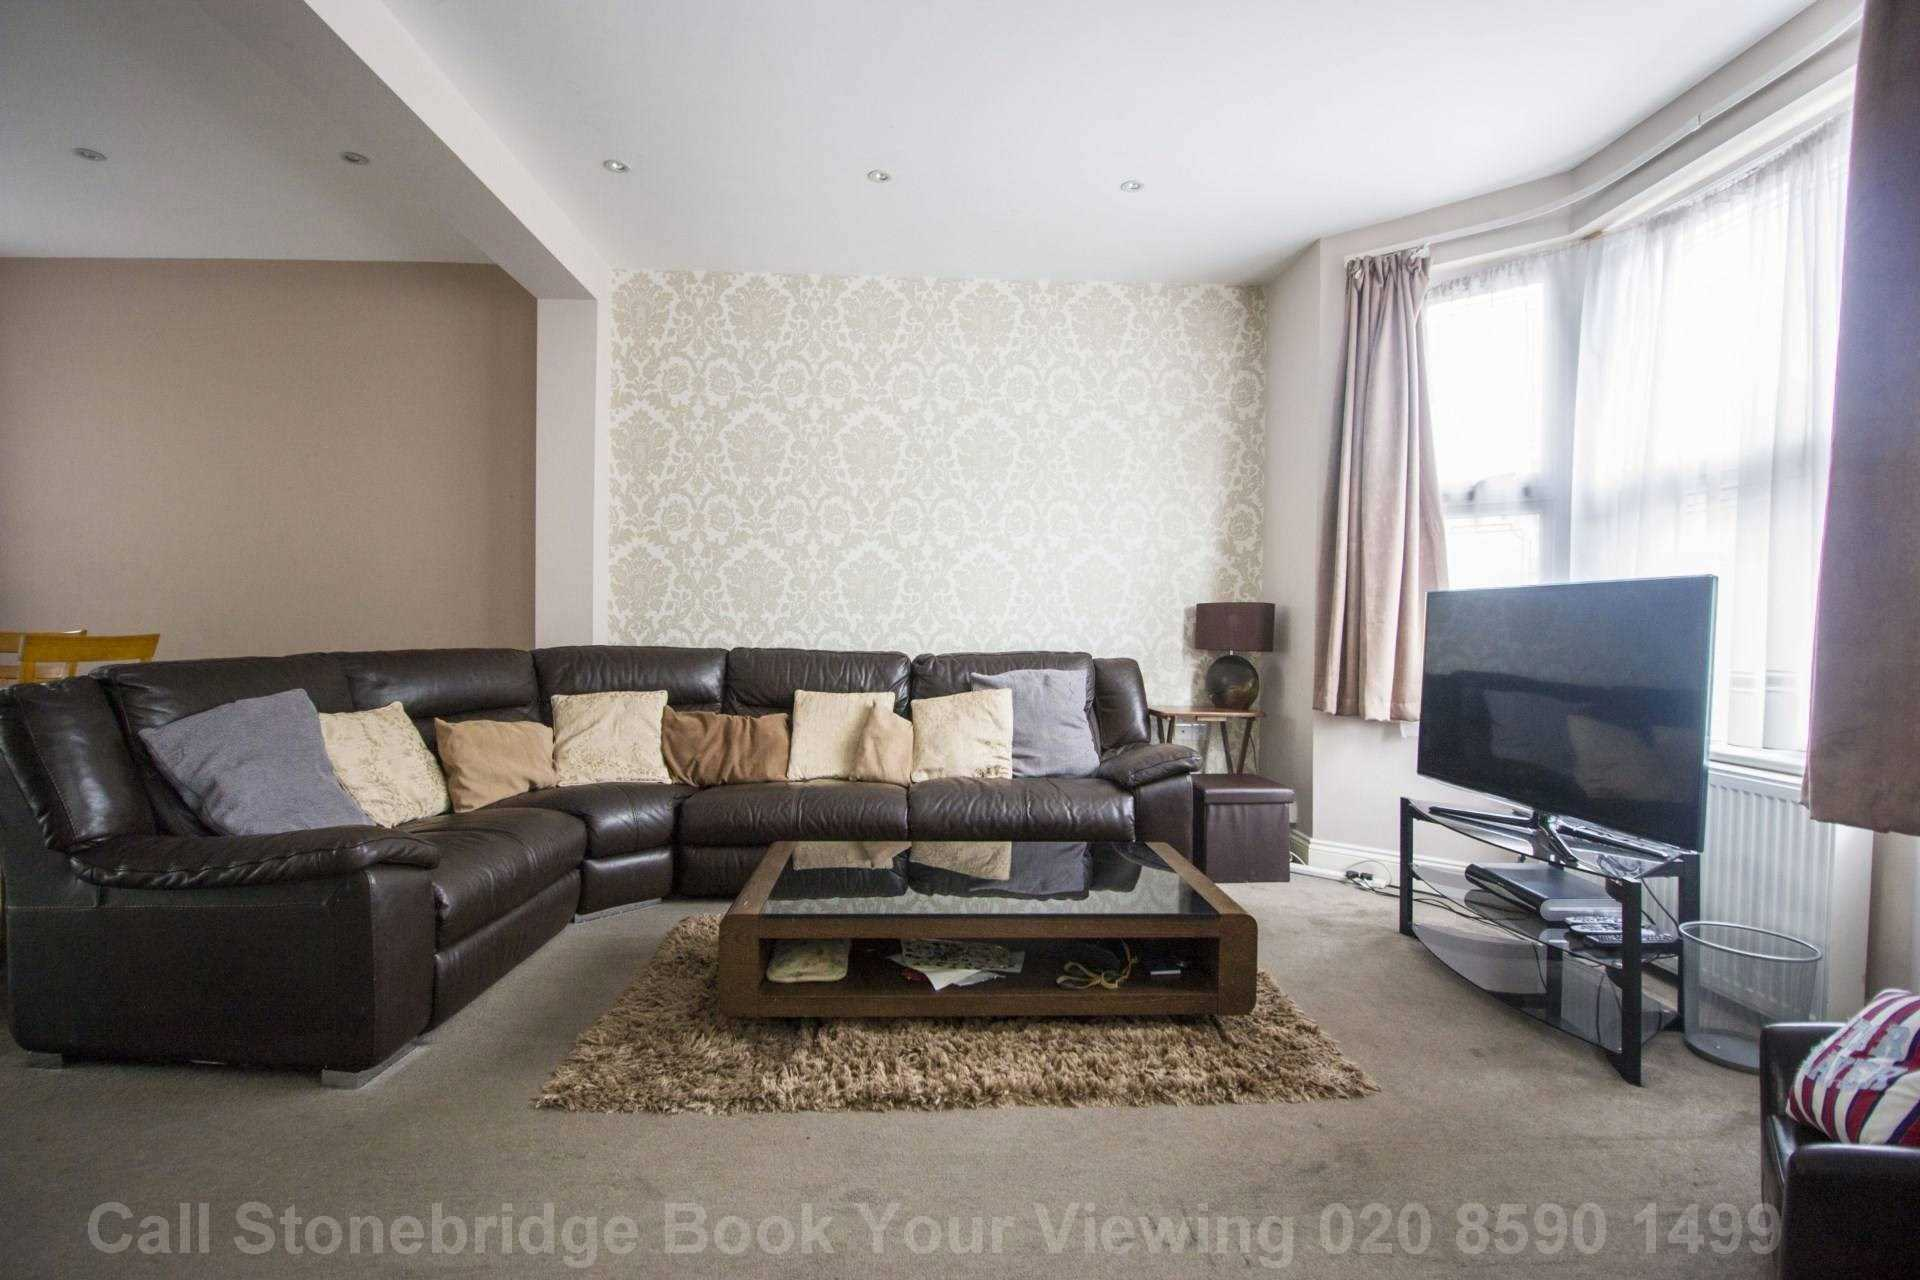 Property For Sale Kenneth Road Chadwell Heath Rm6 Stonebridge London Ltd Id 456